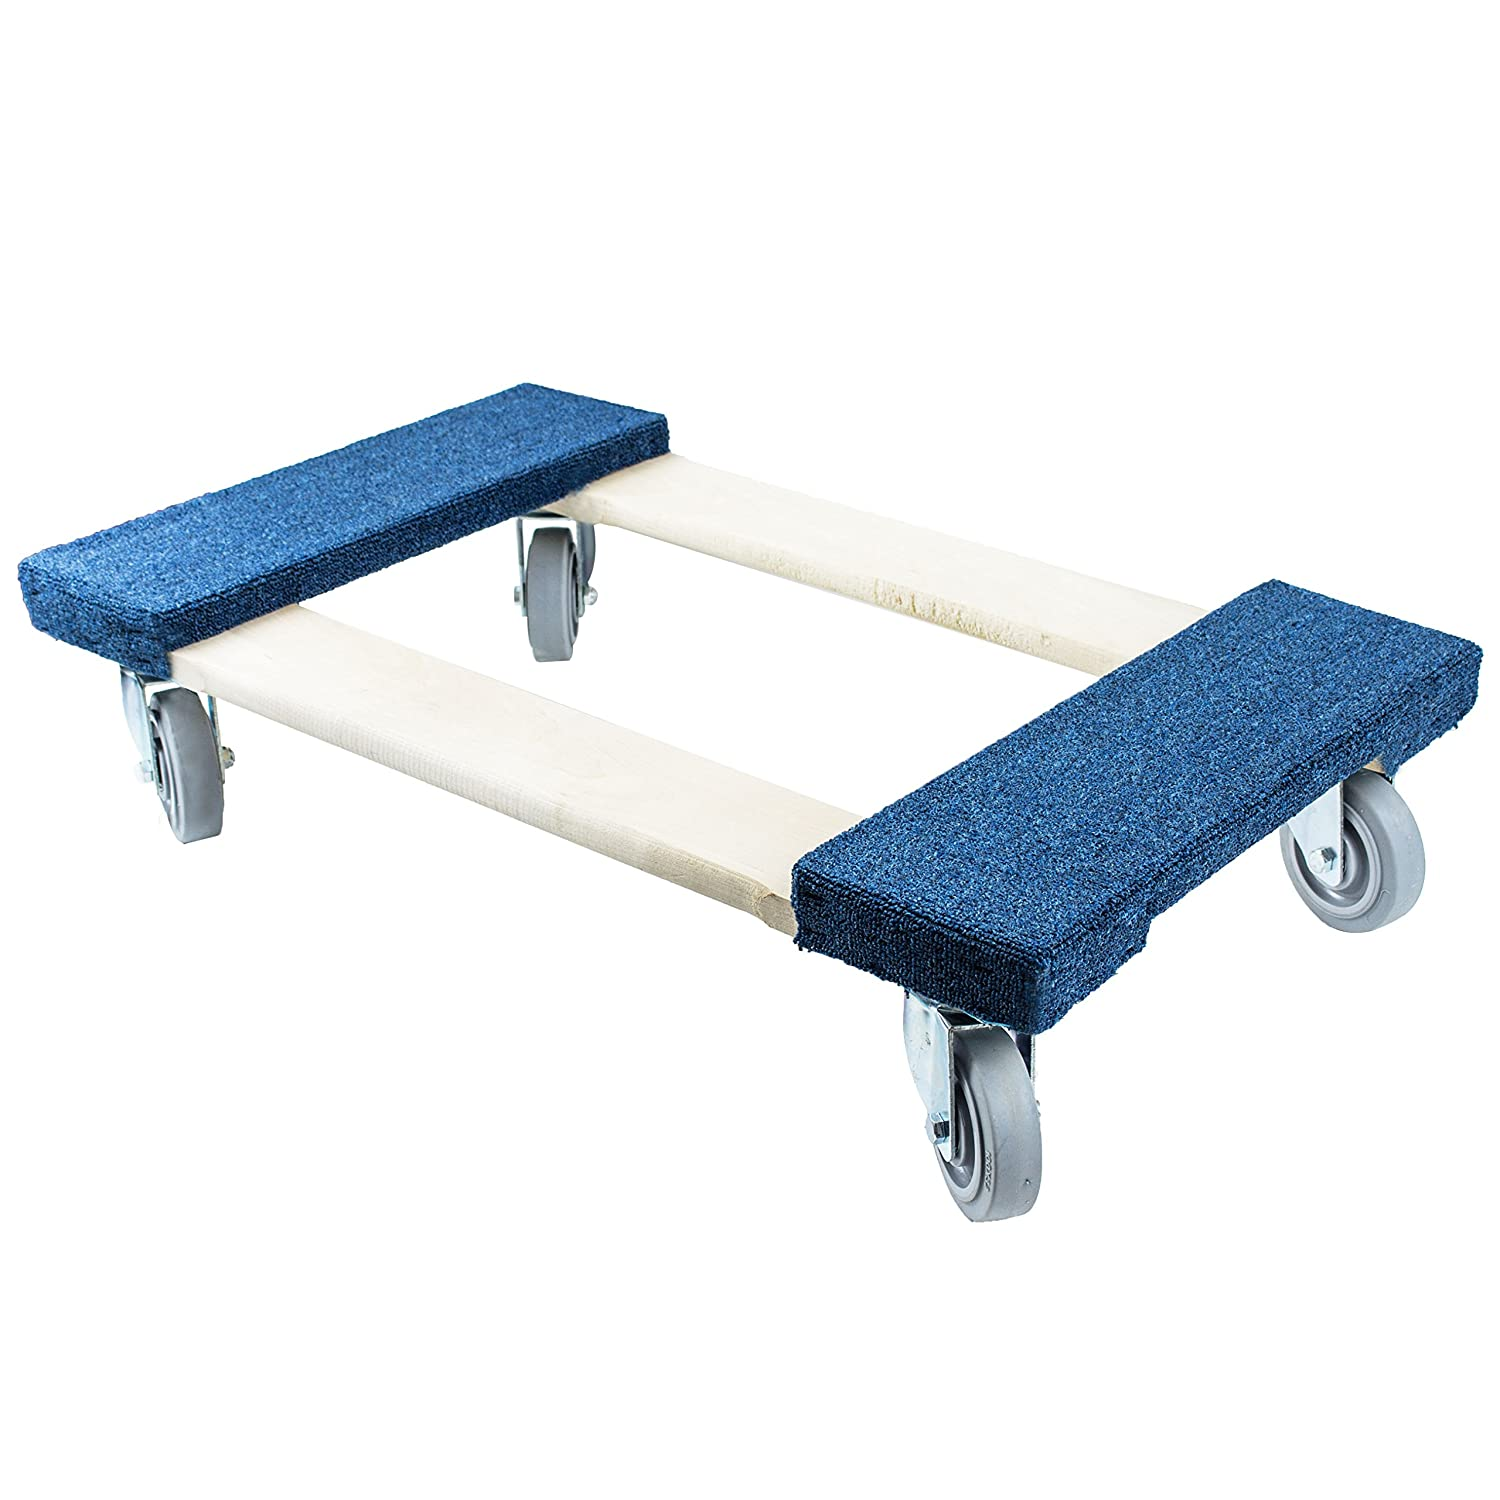 NK Furniture Movers Dolly, Soft Gray Non-marking TPR Wheels, 30' Length x 17' Width (Blue, 3' TPR Wheels) 30 Length x 17 Width (Blue 3 TPR Wheels) NK Material Handling Supply CECOMINOD076454